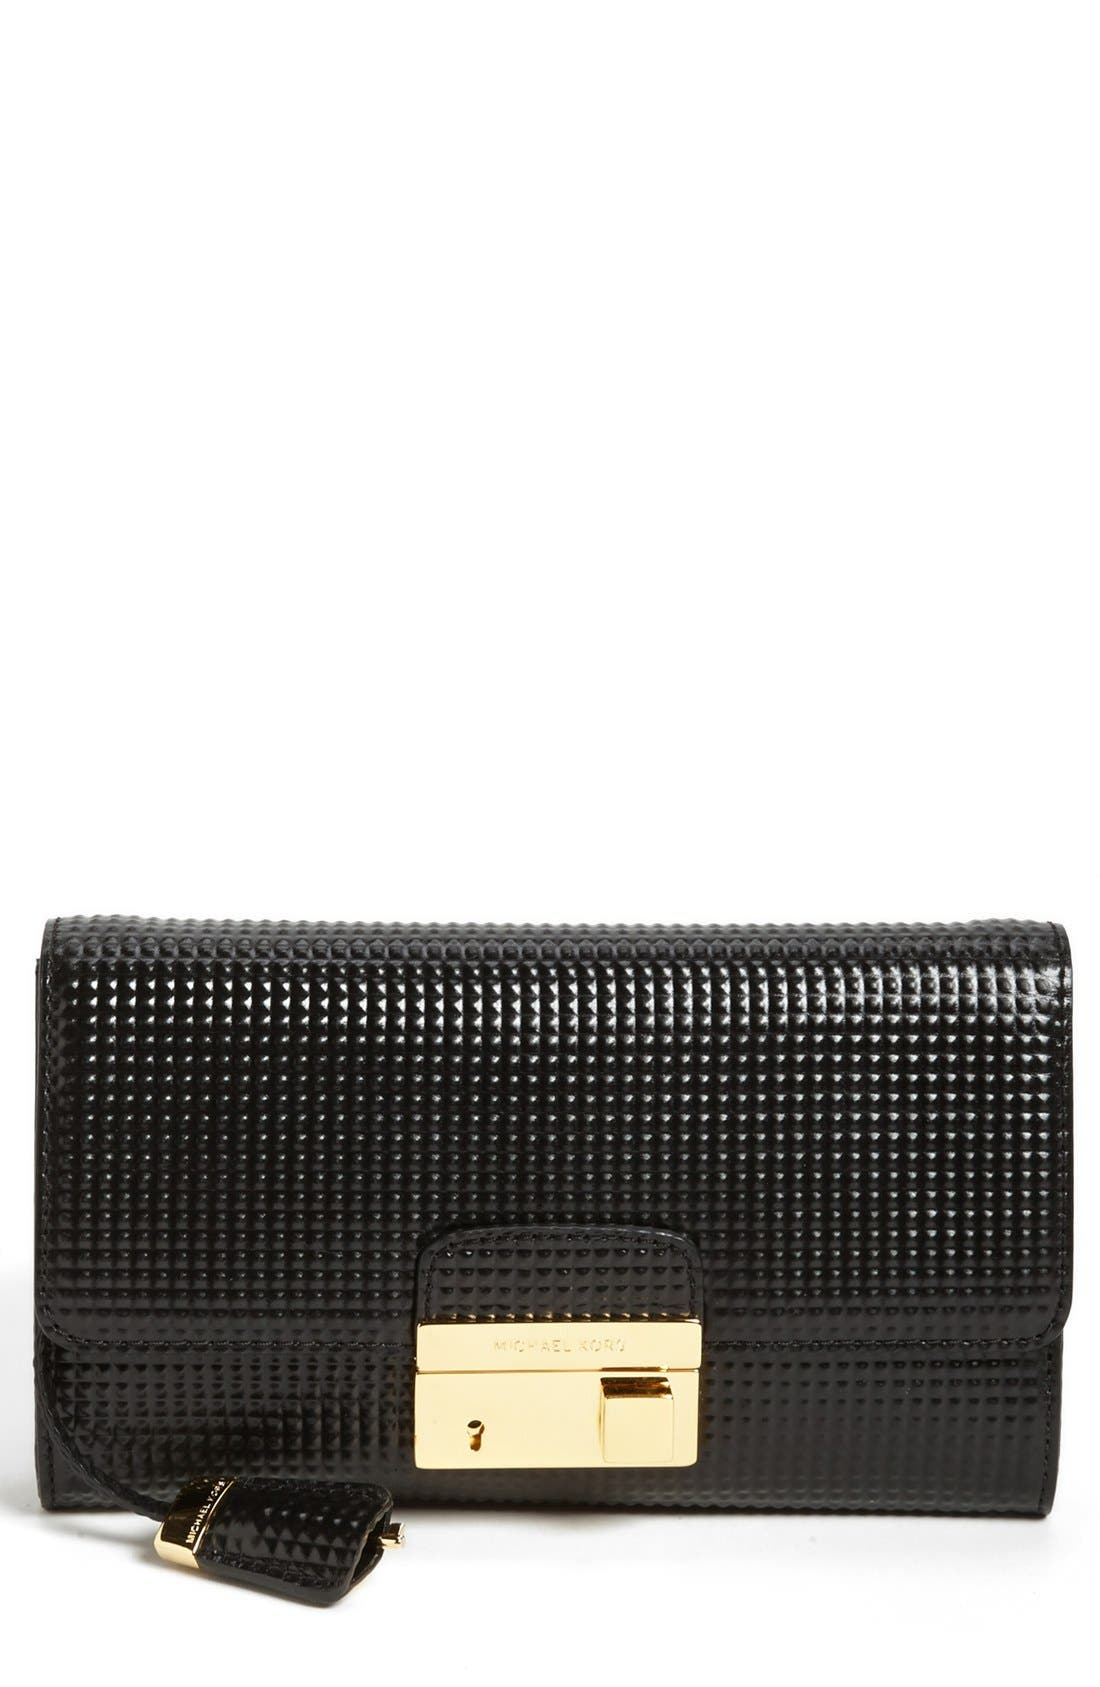 Main Image - Michael Kors 'Gia' Clutch